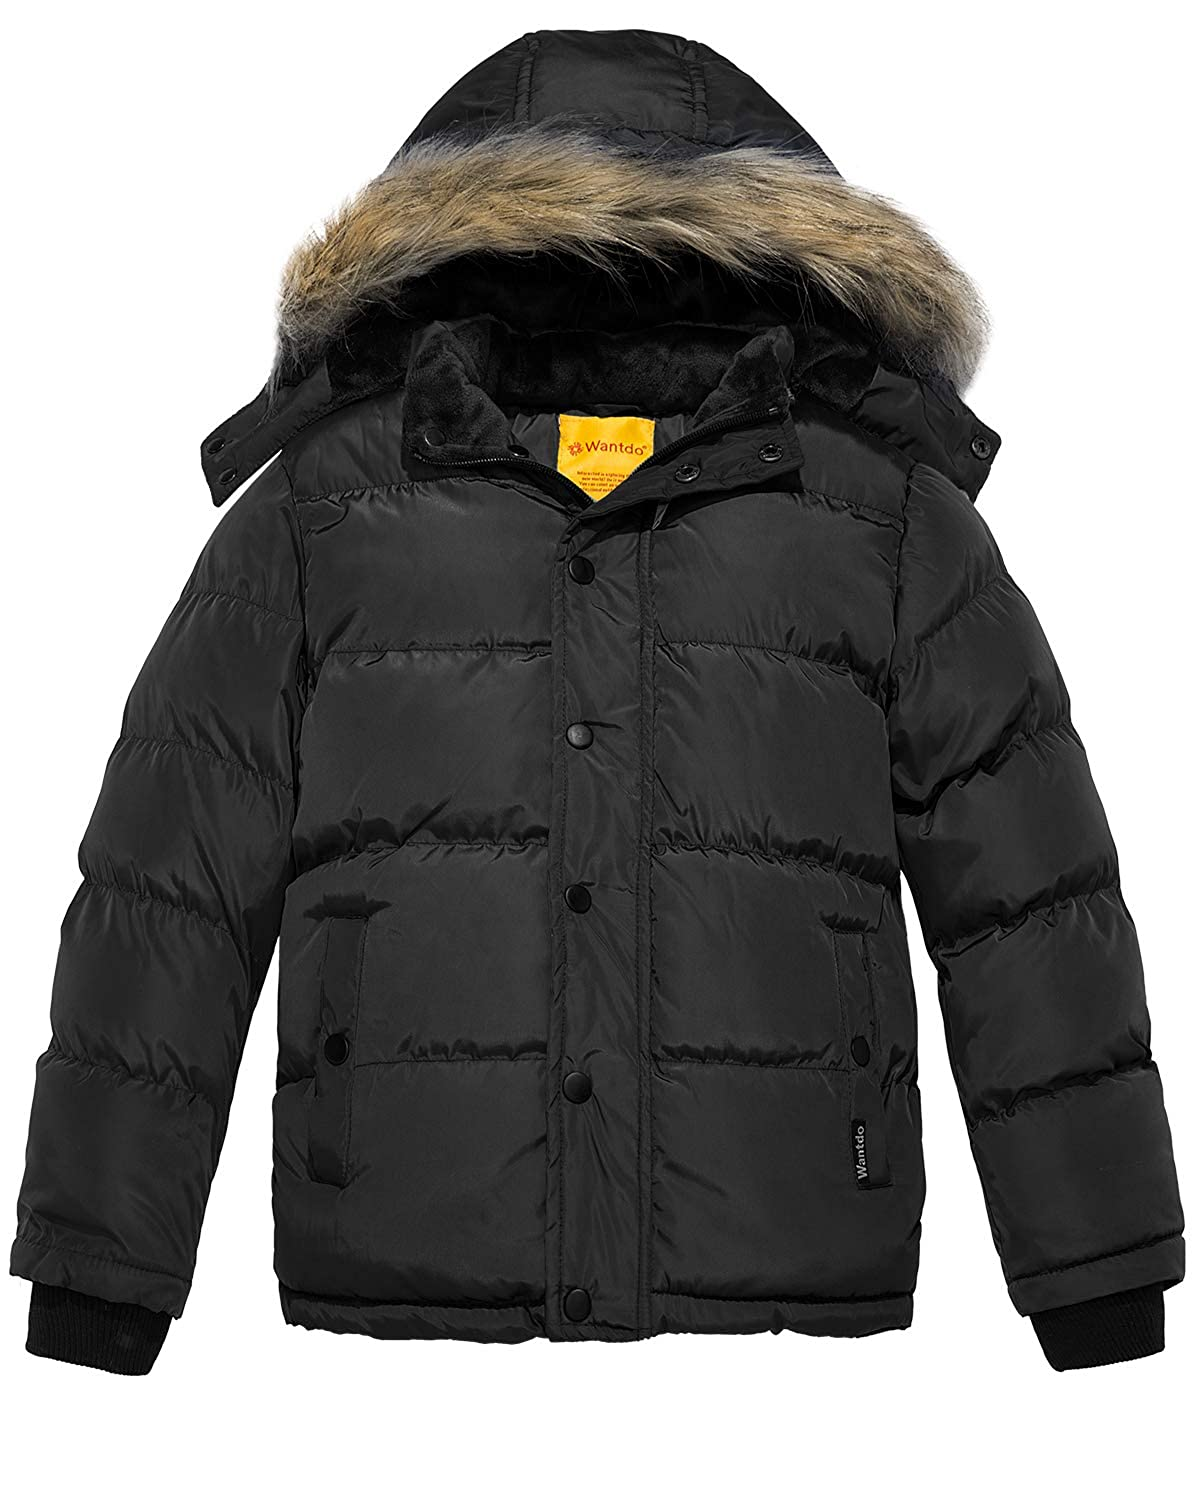 Wantdo Boy's Hooded Puffer Jacket Thick Winter Coat Warm with Reflective Stripe